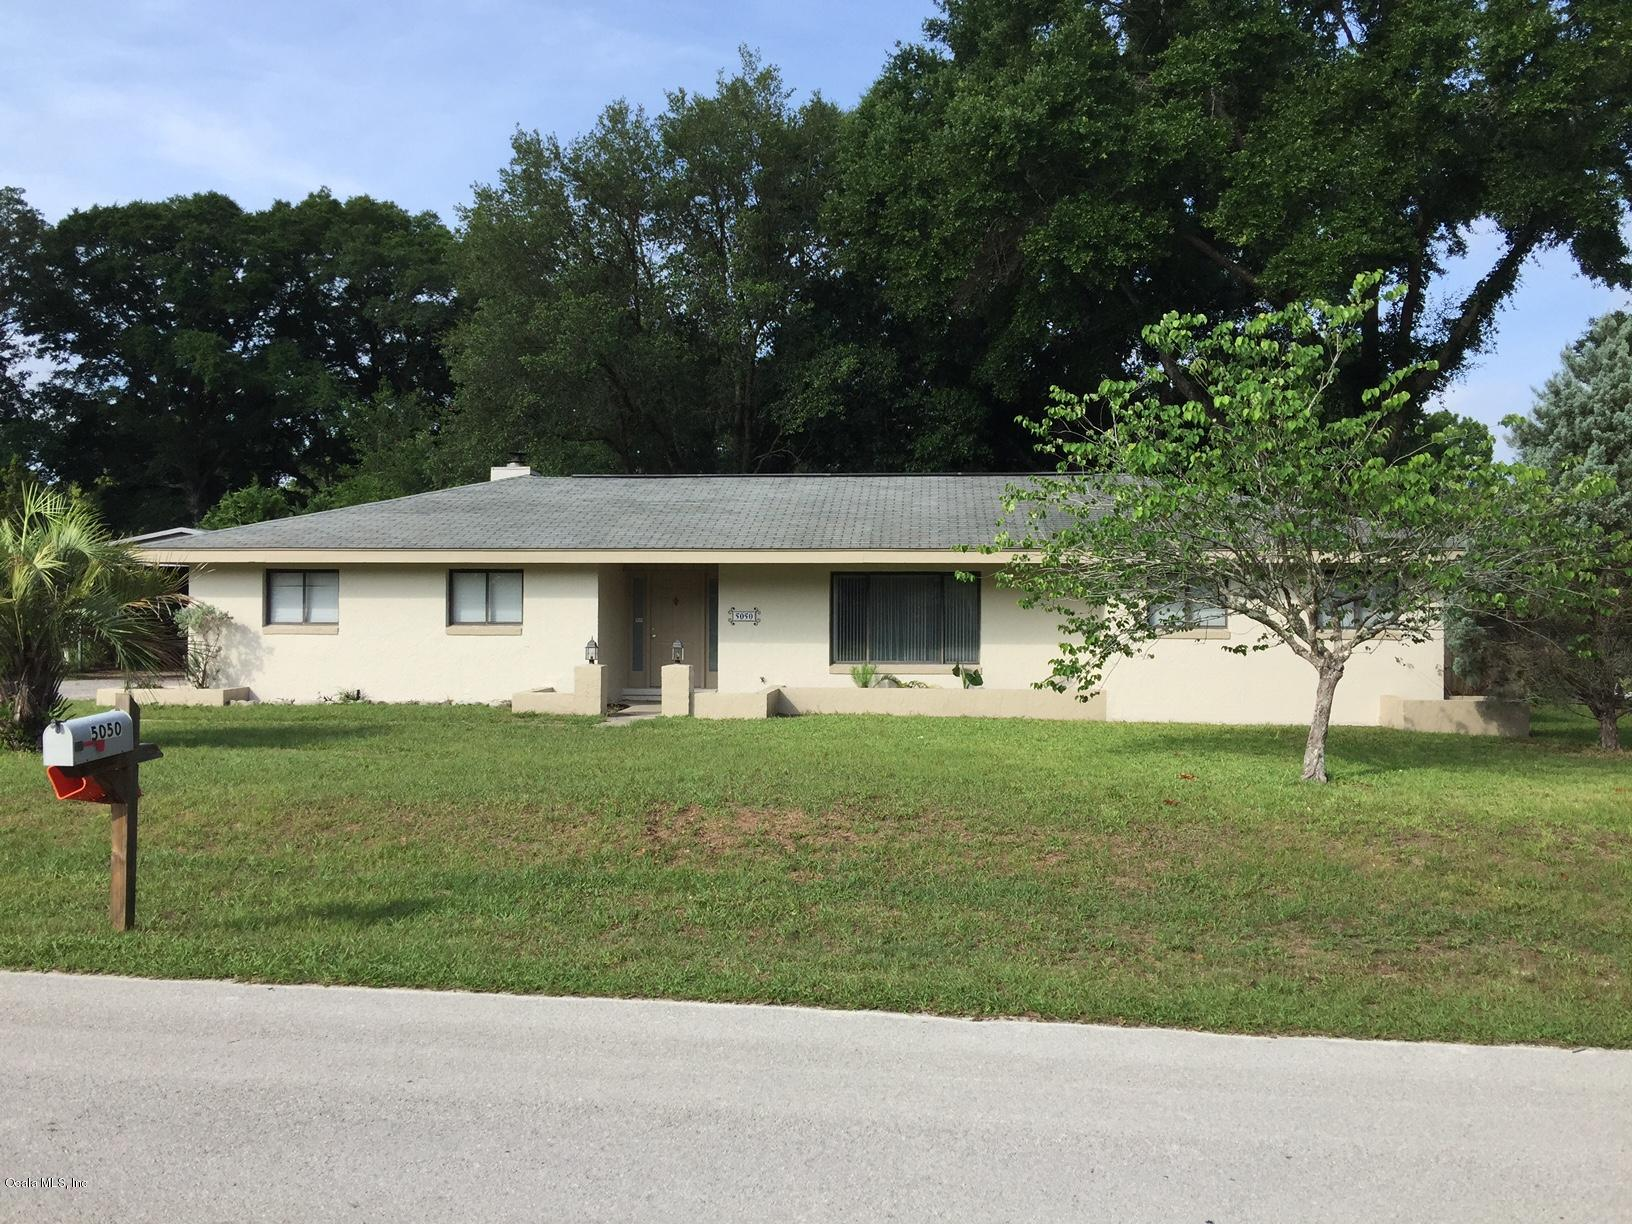 5050 NE 4TH STREET, OCALA, FL 34470